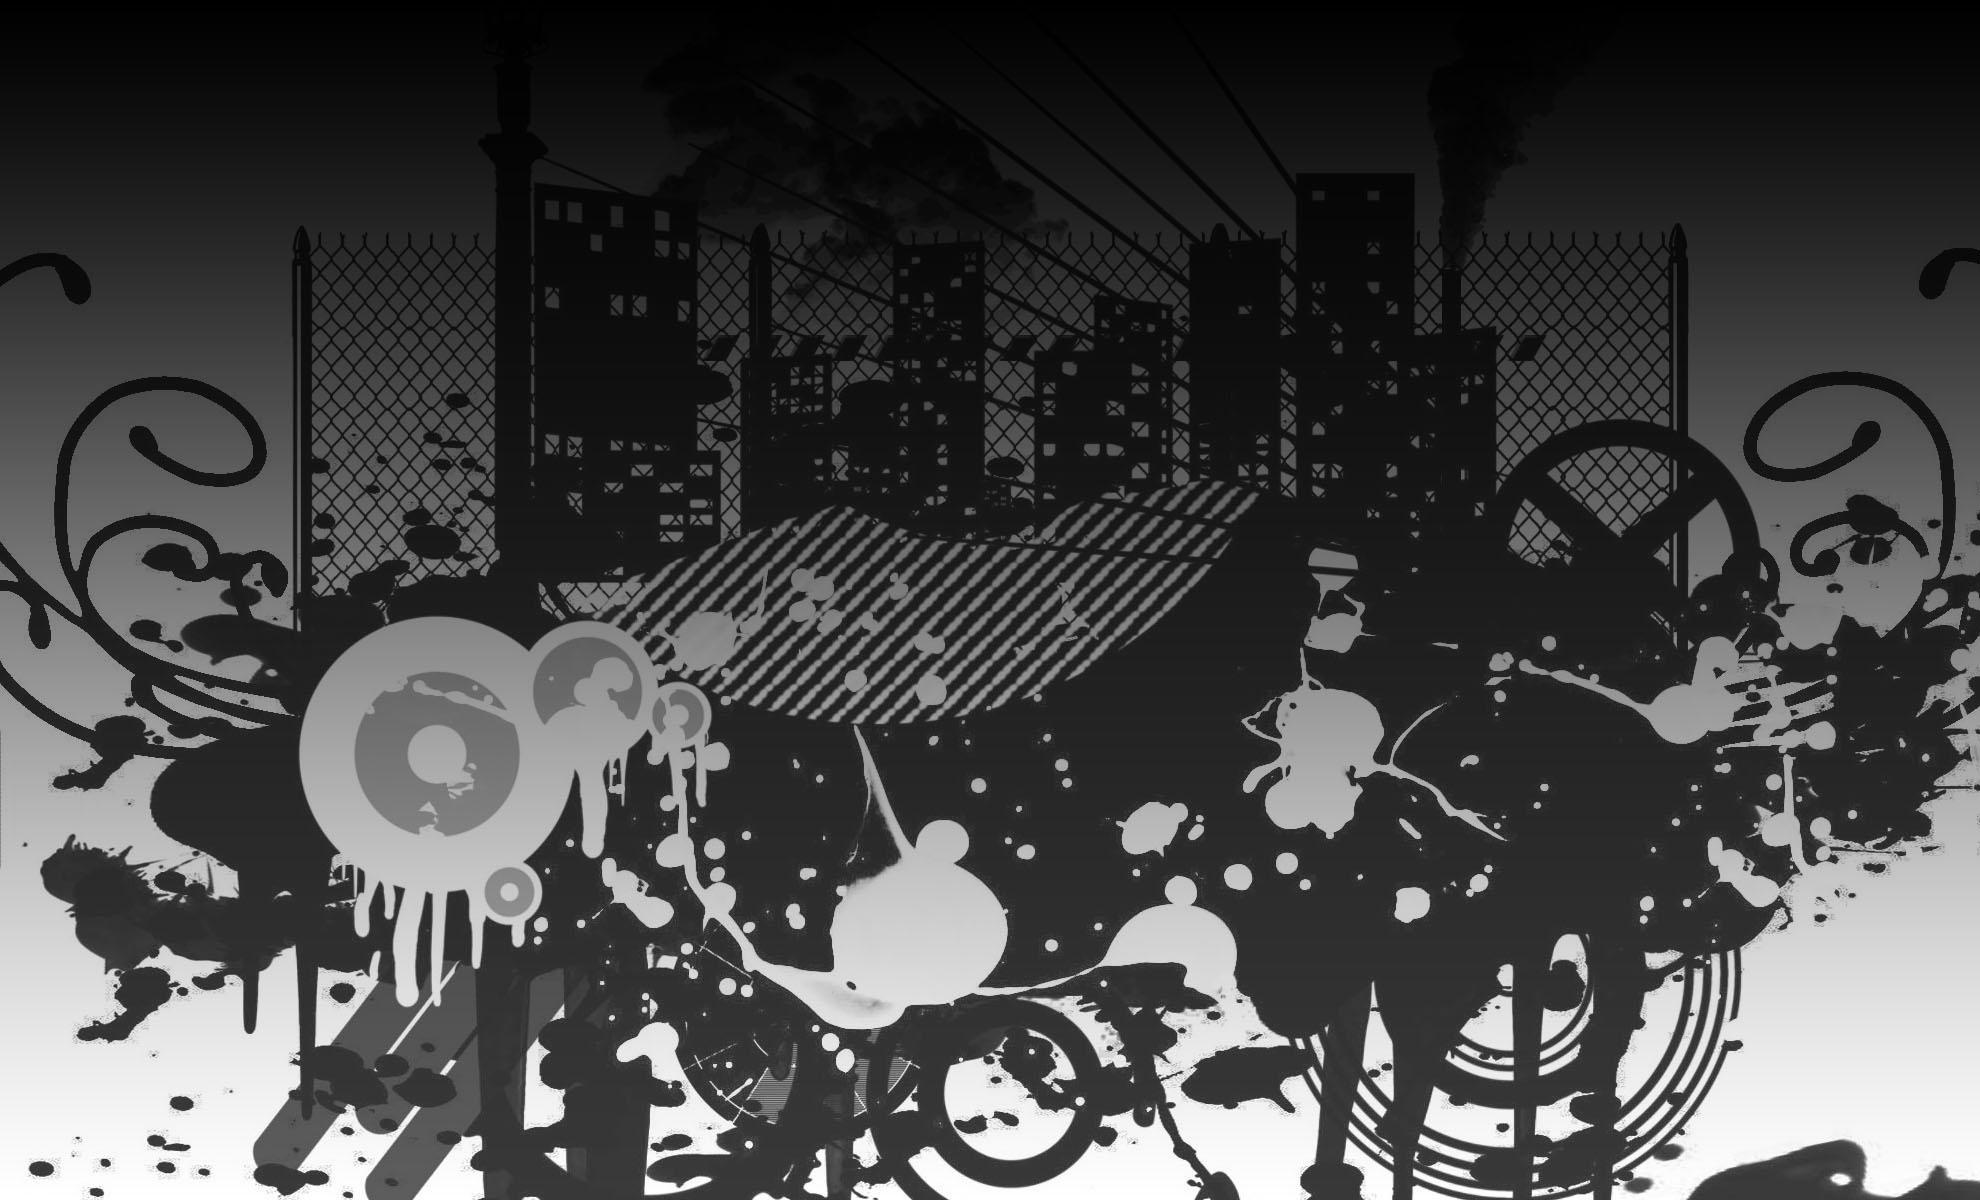 Background Black and White Art Designs